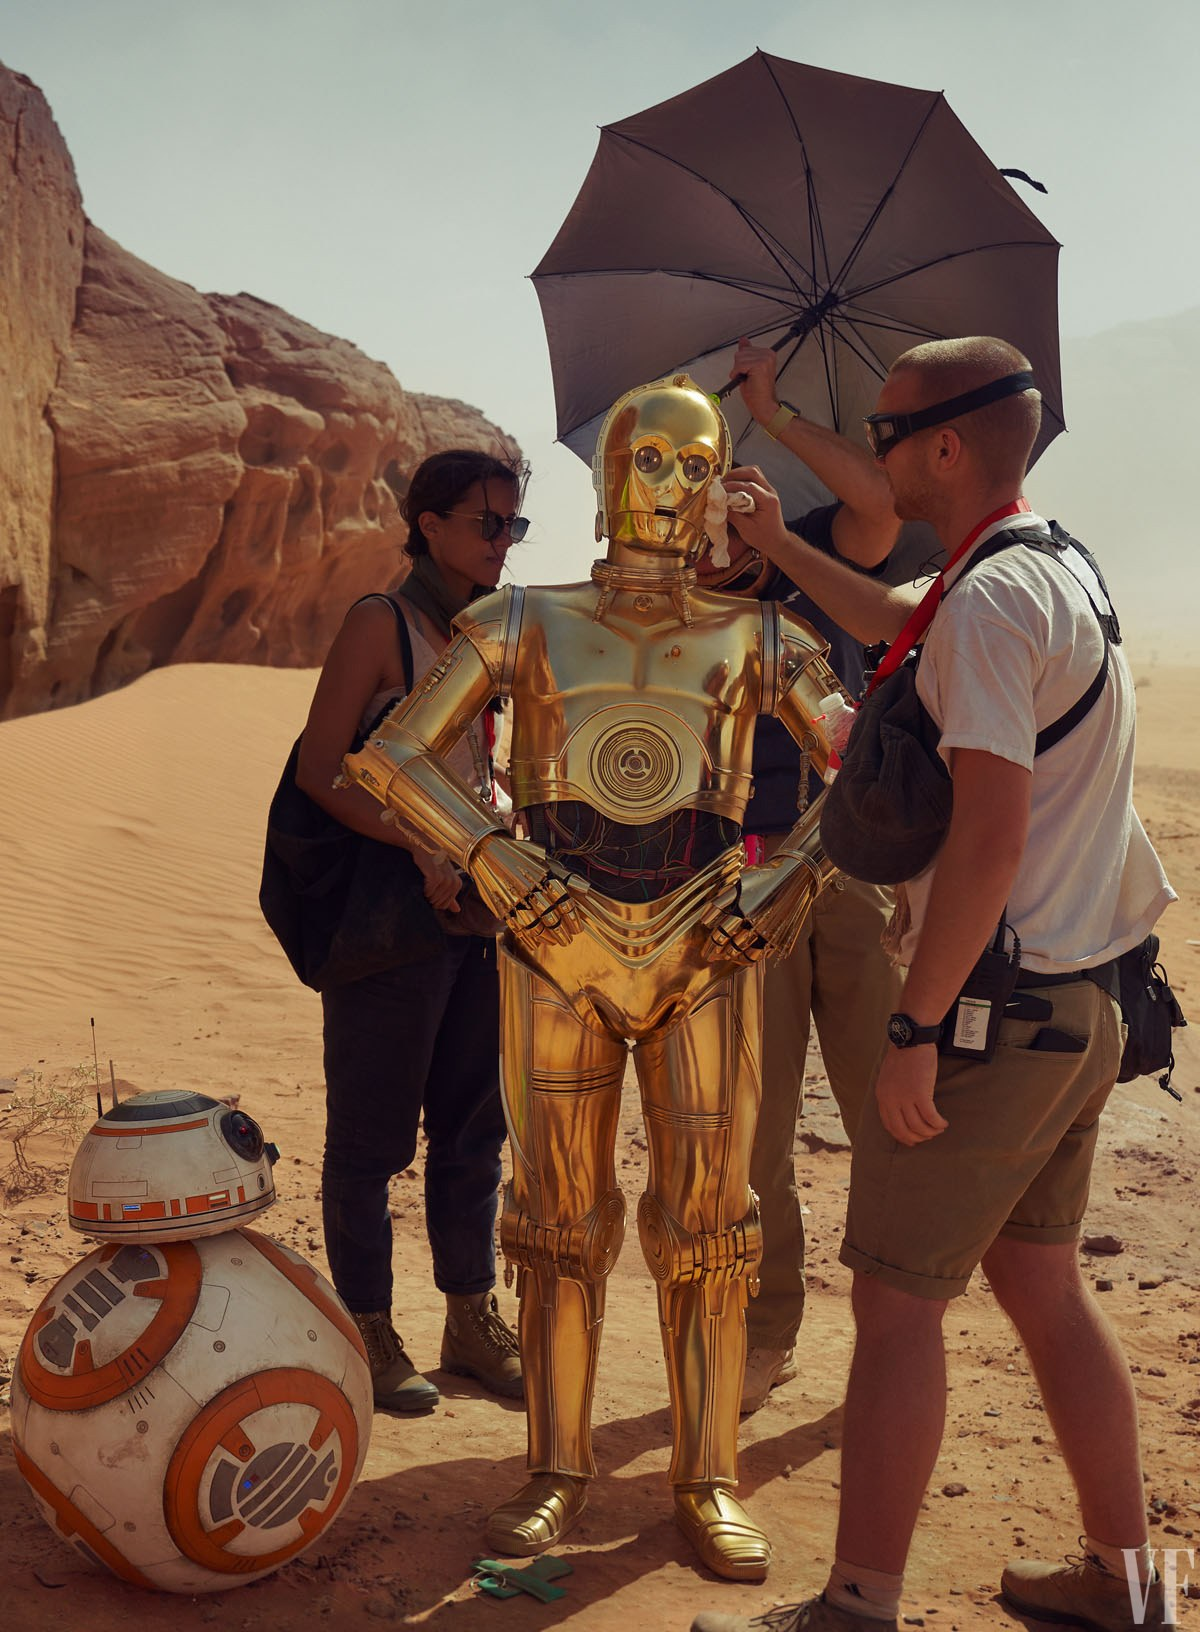 star-wars-feature-vf-2019-summer-embed-02.jpg